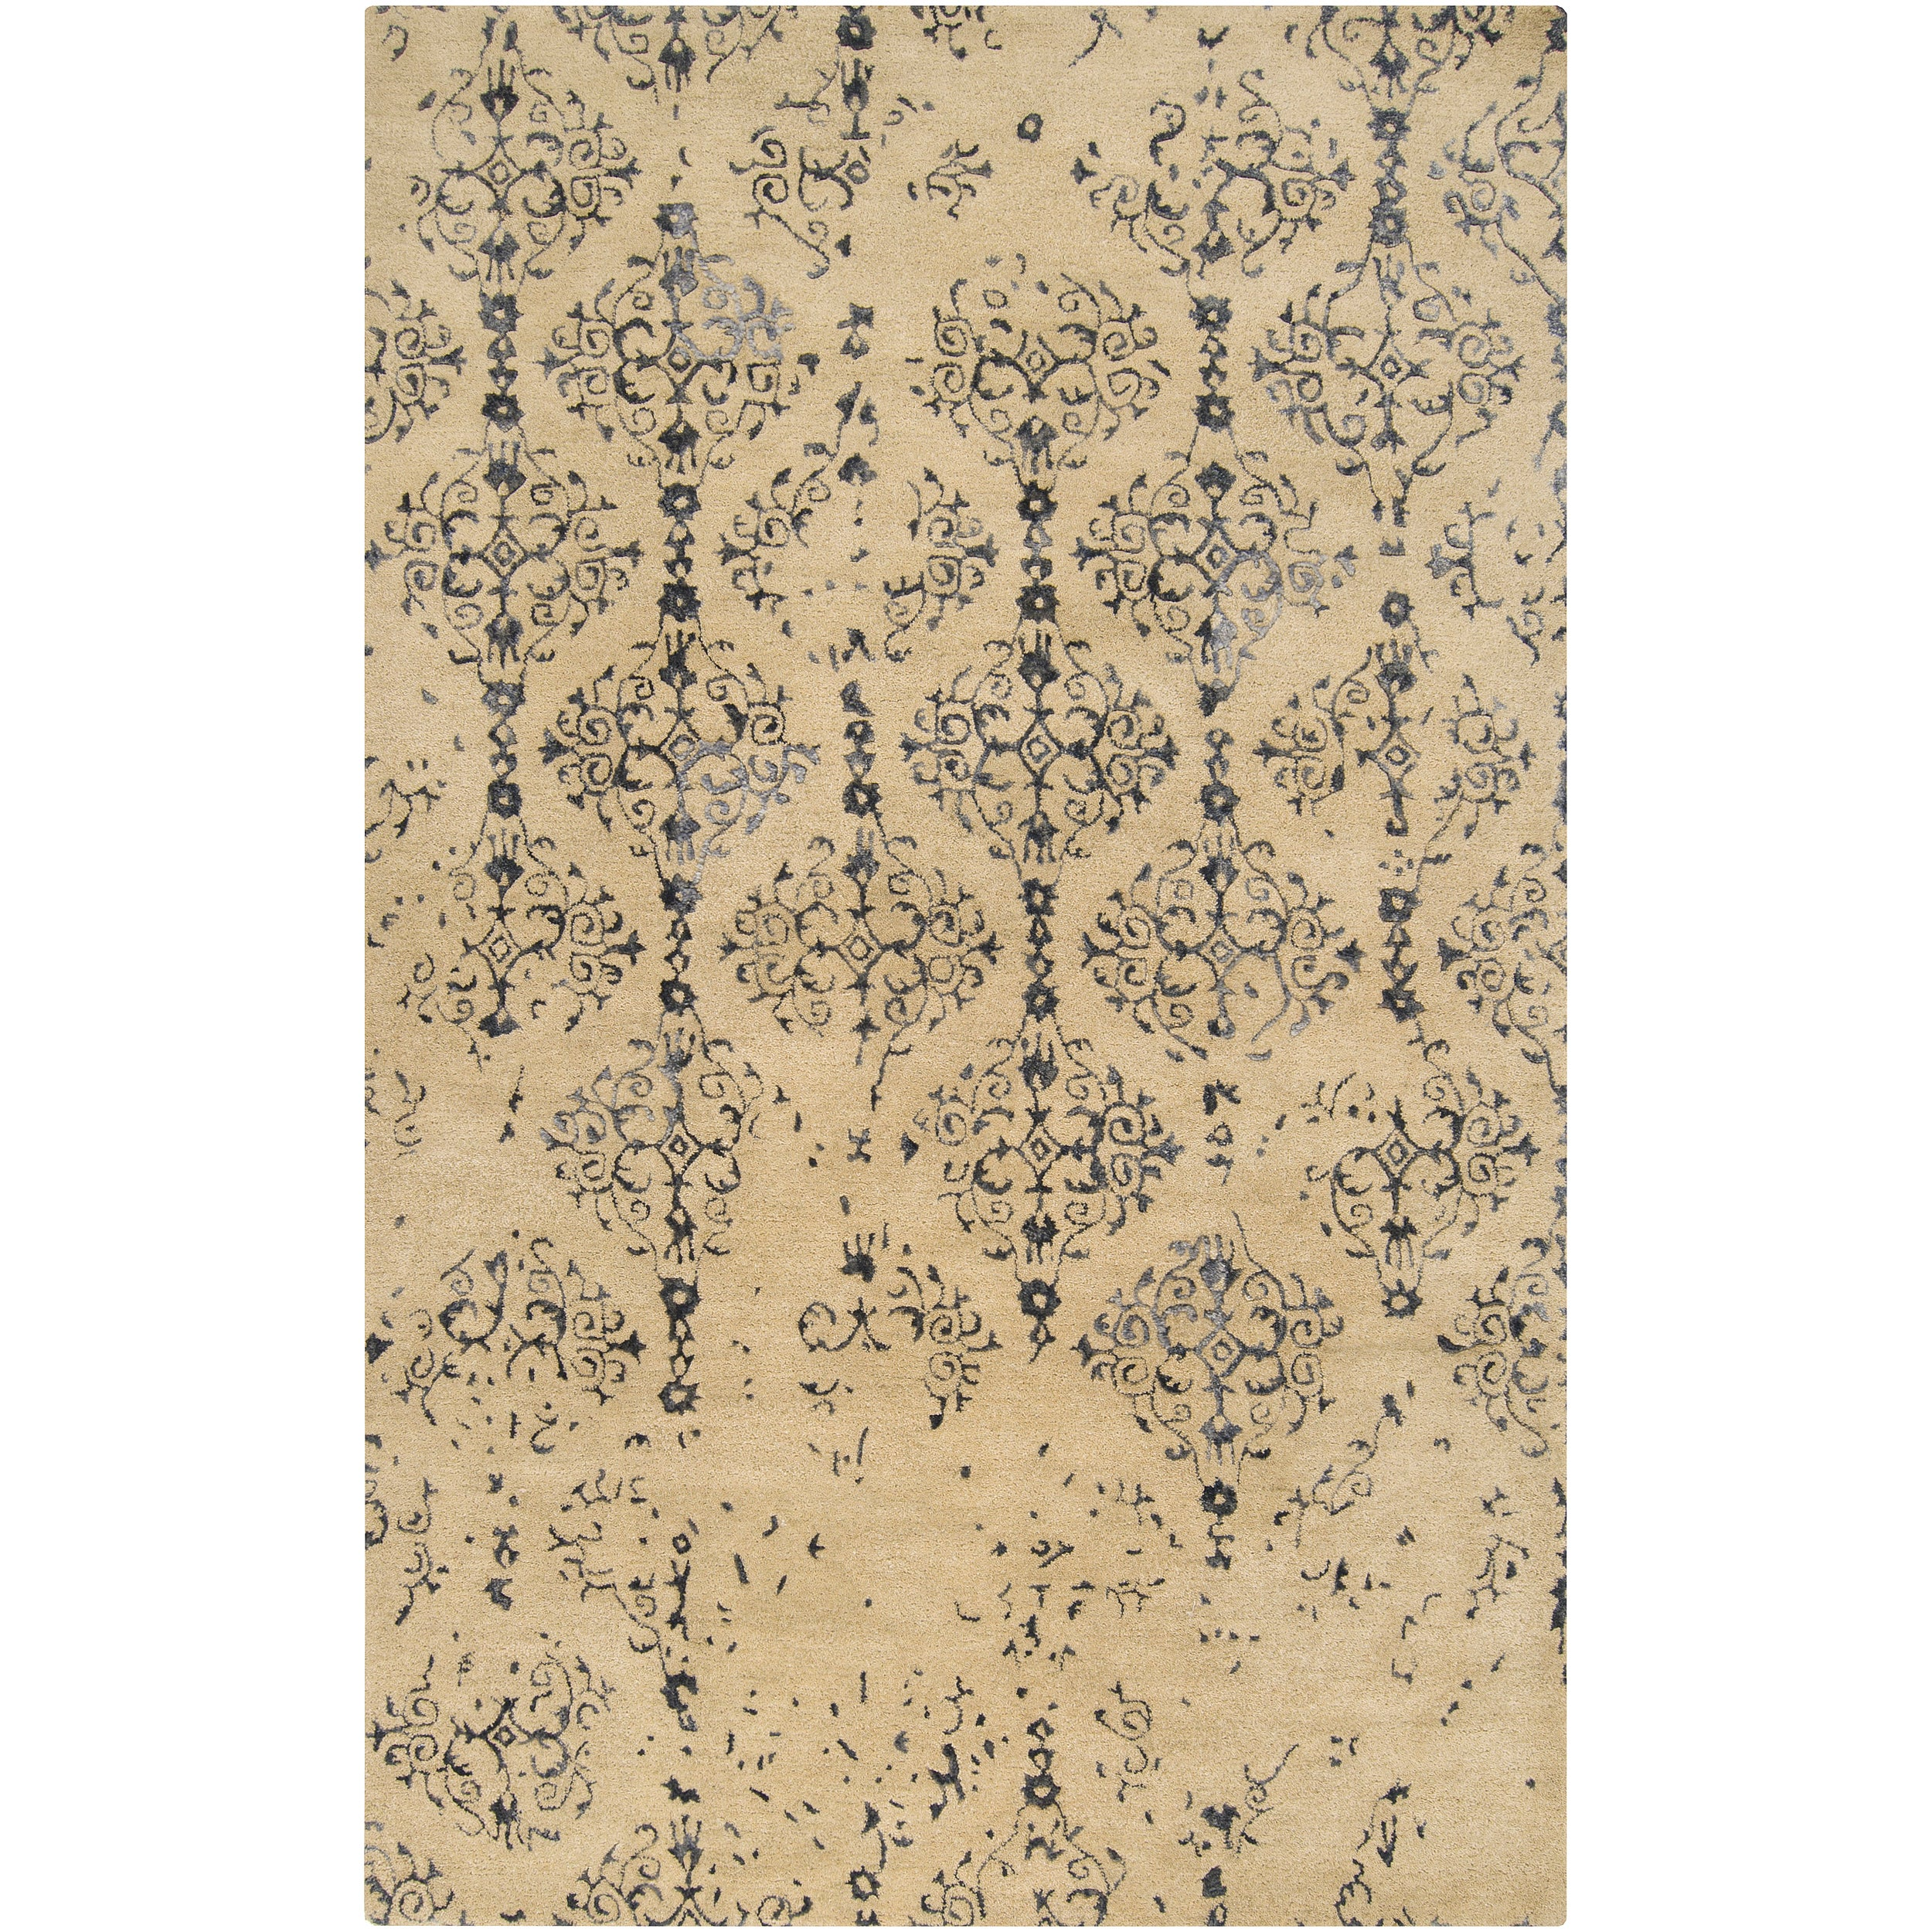 Hand-tufted Contemporary Navy Blue Accented Patterdale New Zealand Wool Abstract Area Rug (8' x 11')